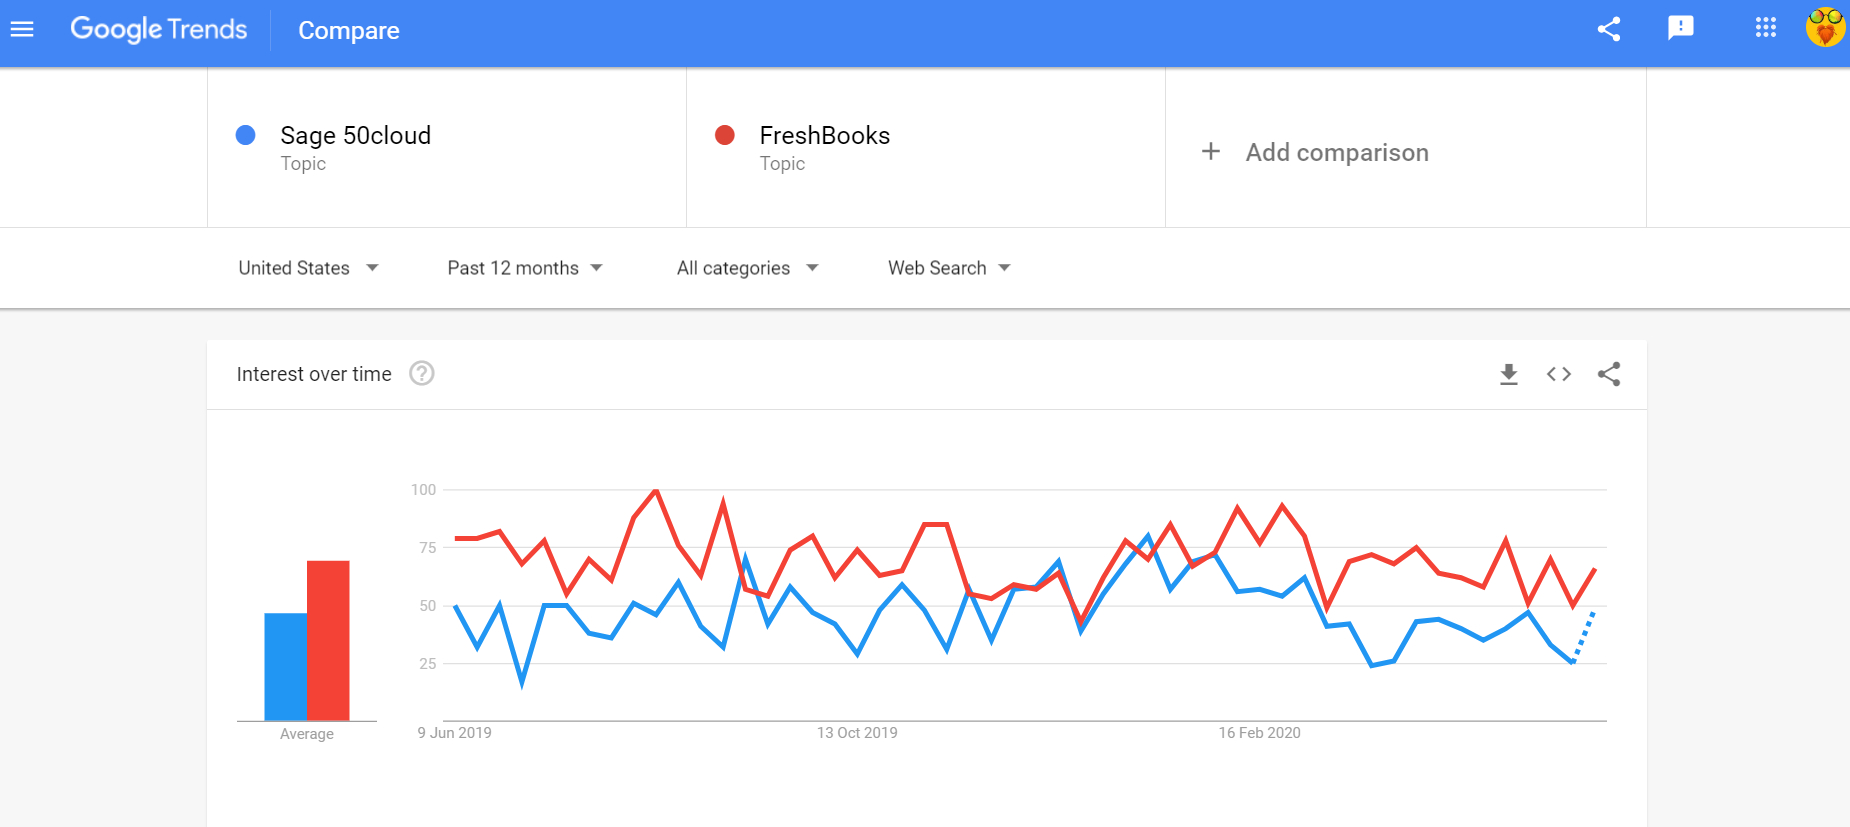 Sage 50cloud vs FreshBooks